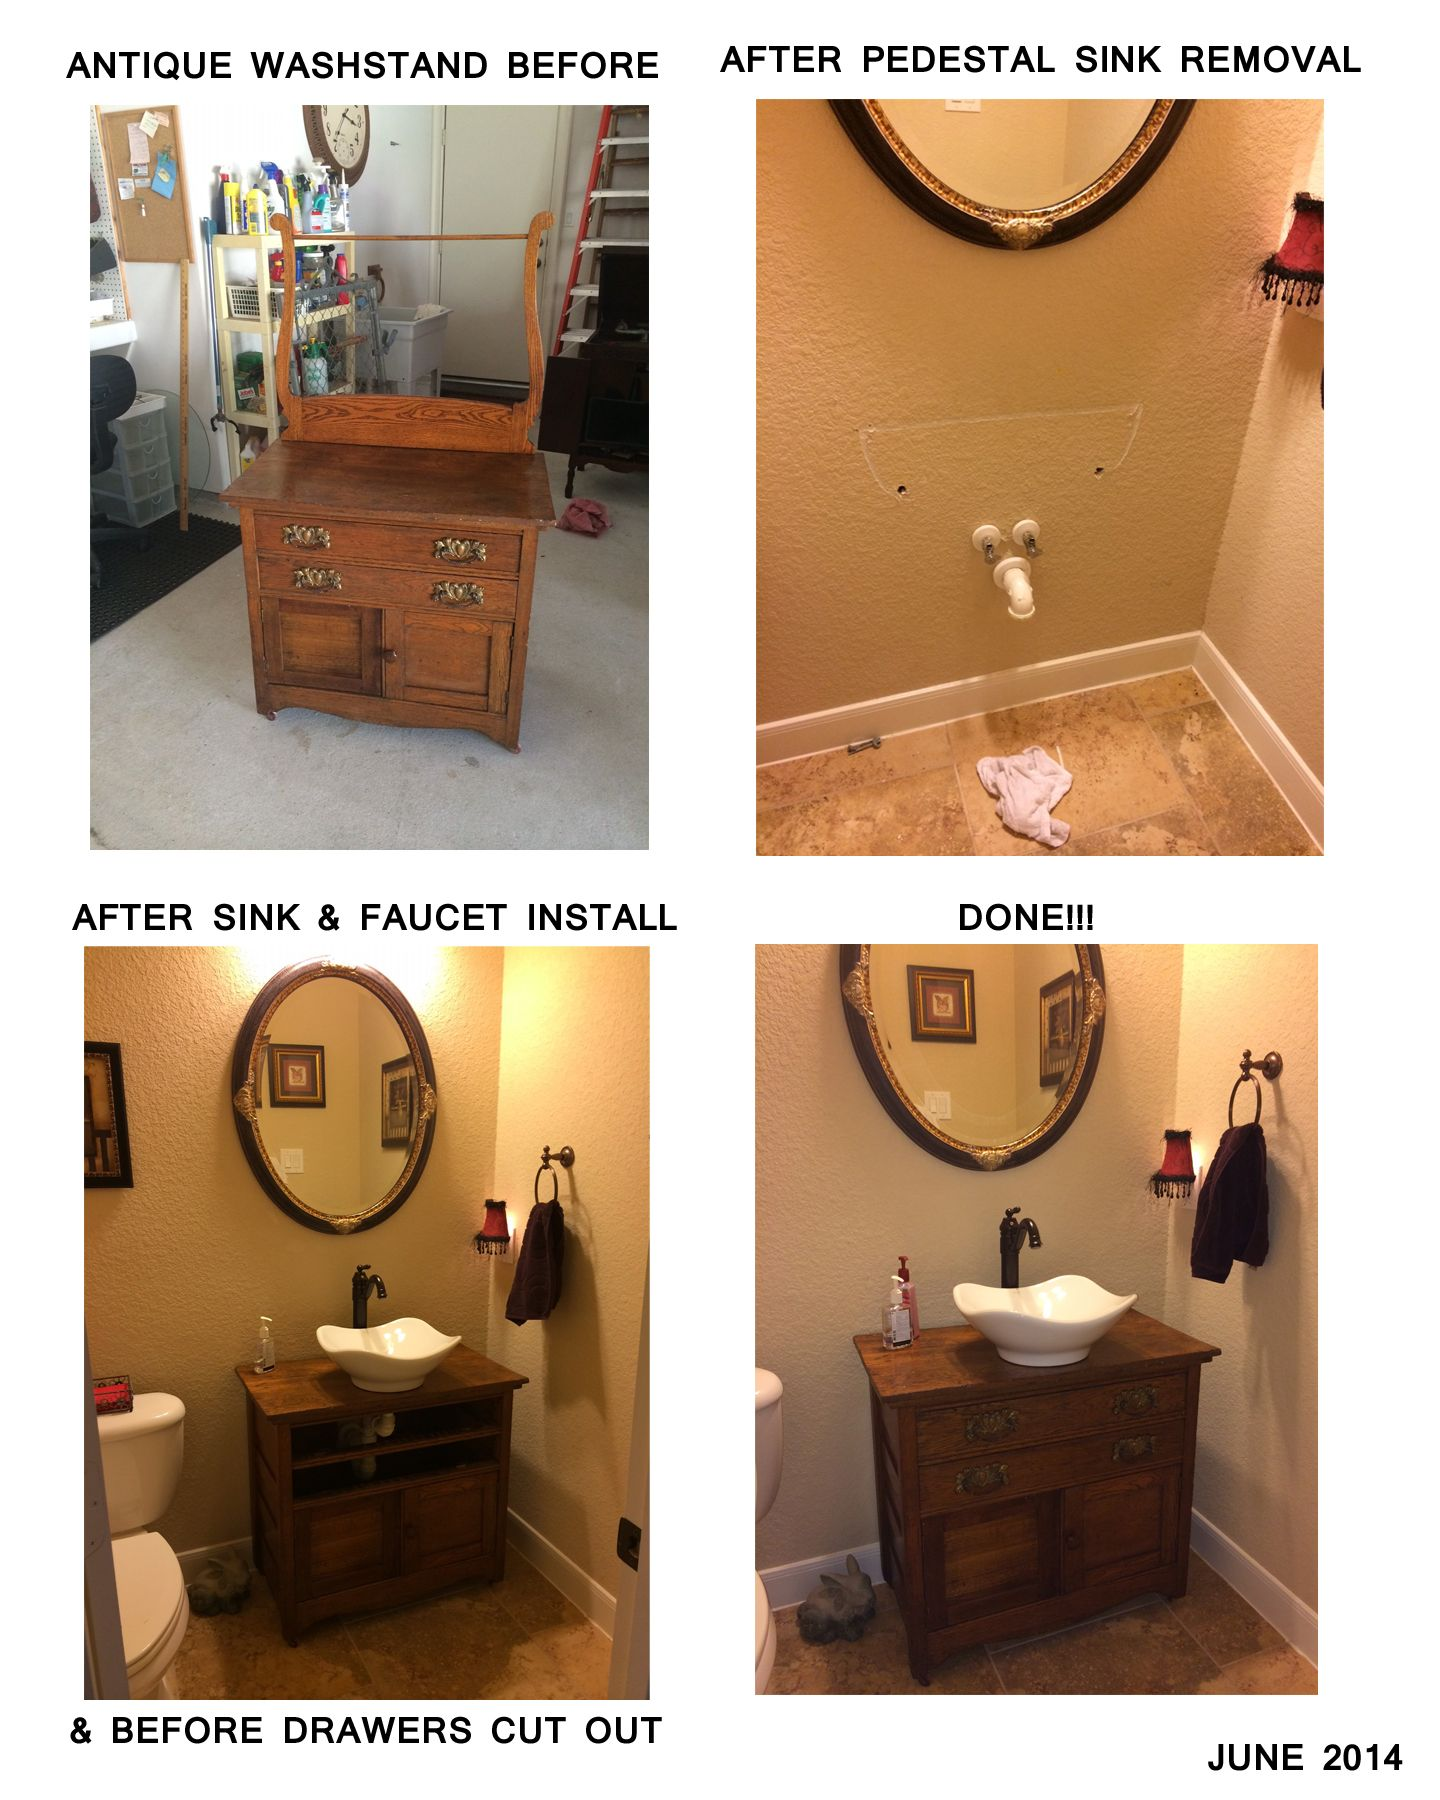 Converted An Antique Washstand To Powder Bath Vanity Removed Pedestal Sink Installed Ves And New Water Faucet